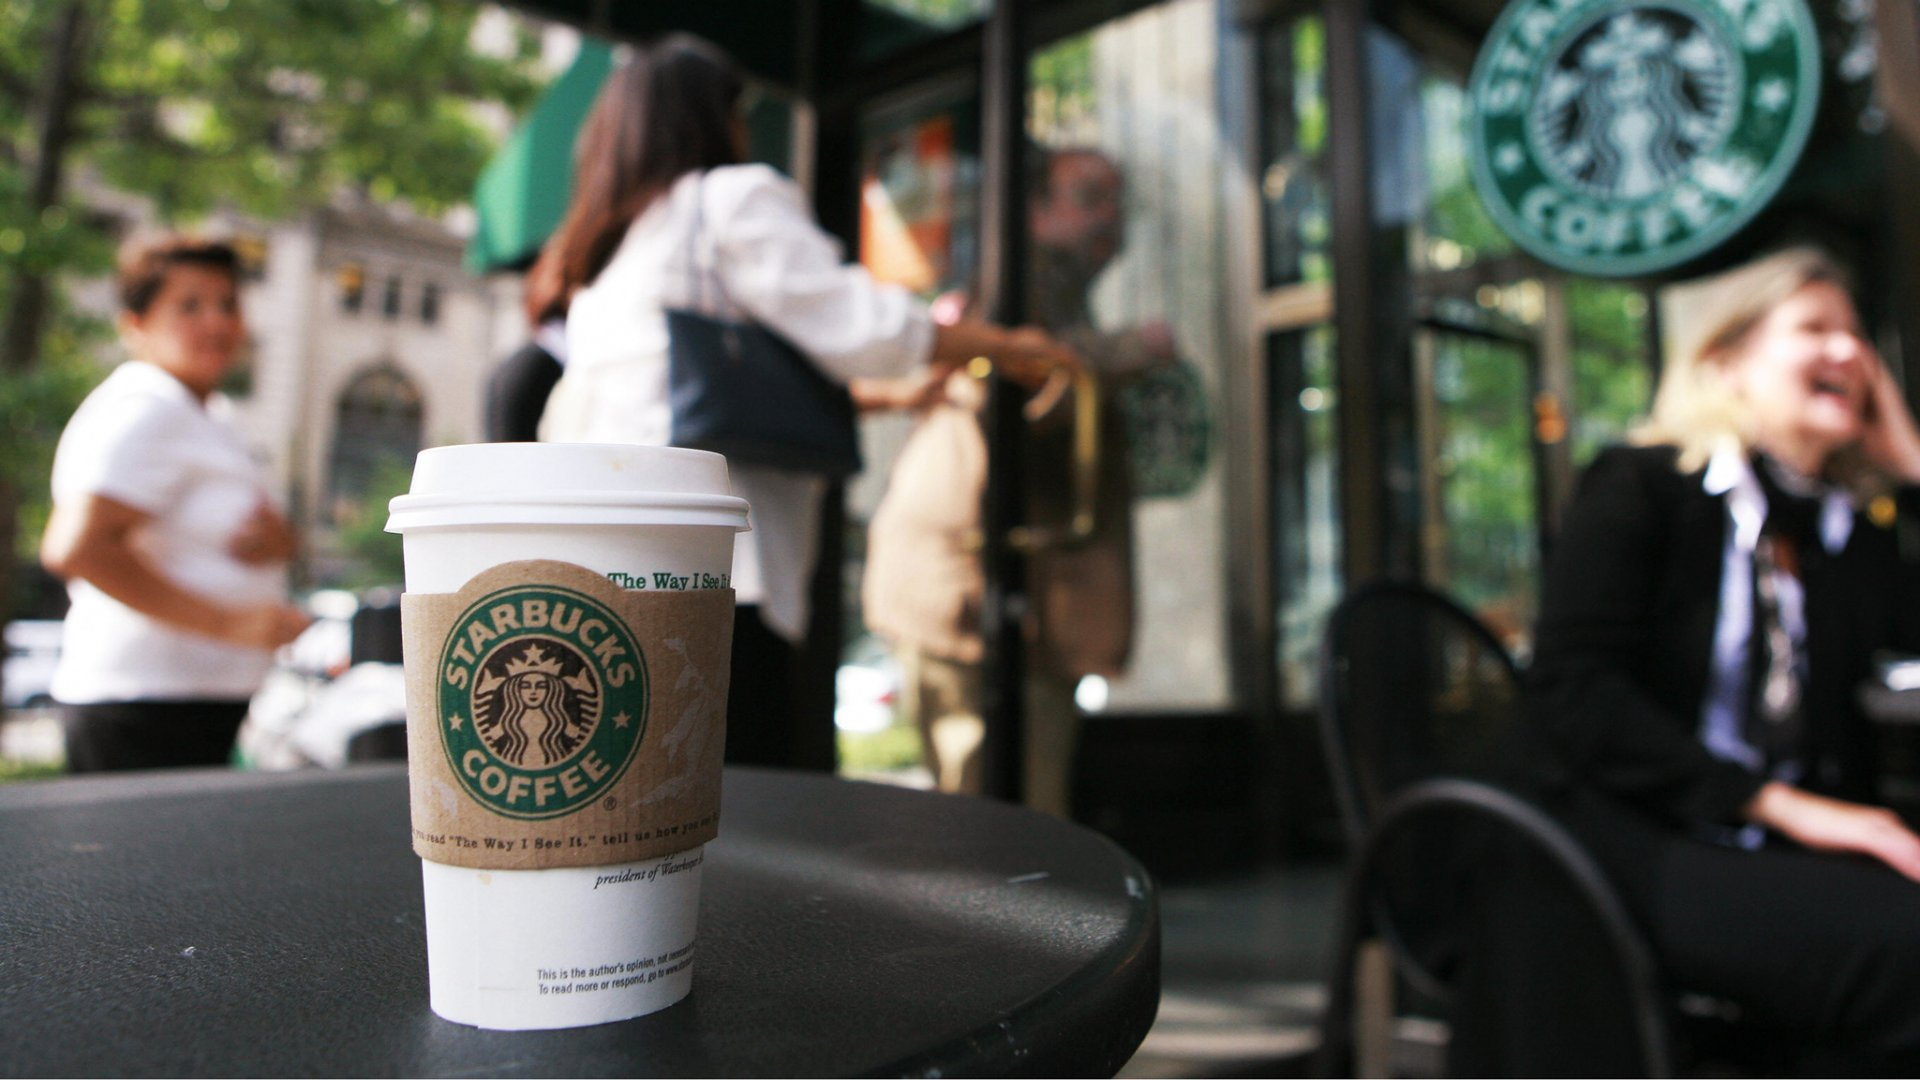 Starbucks Just Announced a Drastic Change. What Every Company Can Learn From It